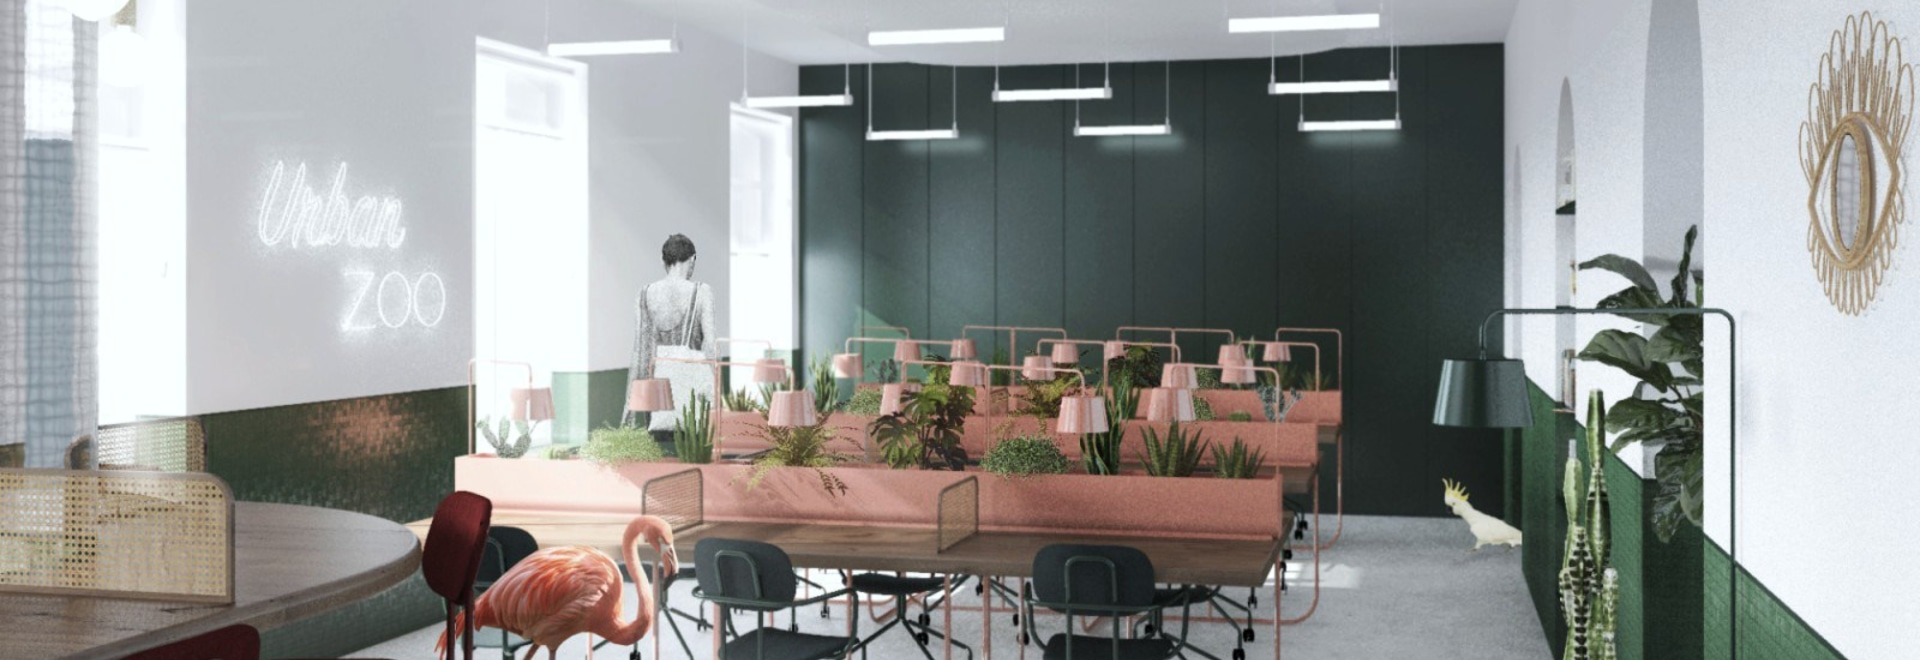 Winners of Urban Zoo Coworking Design Challenge competition